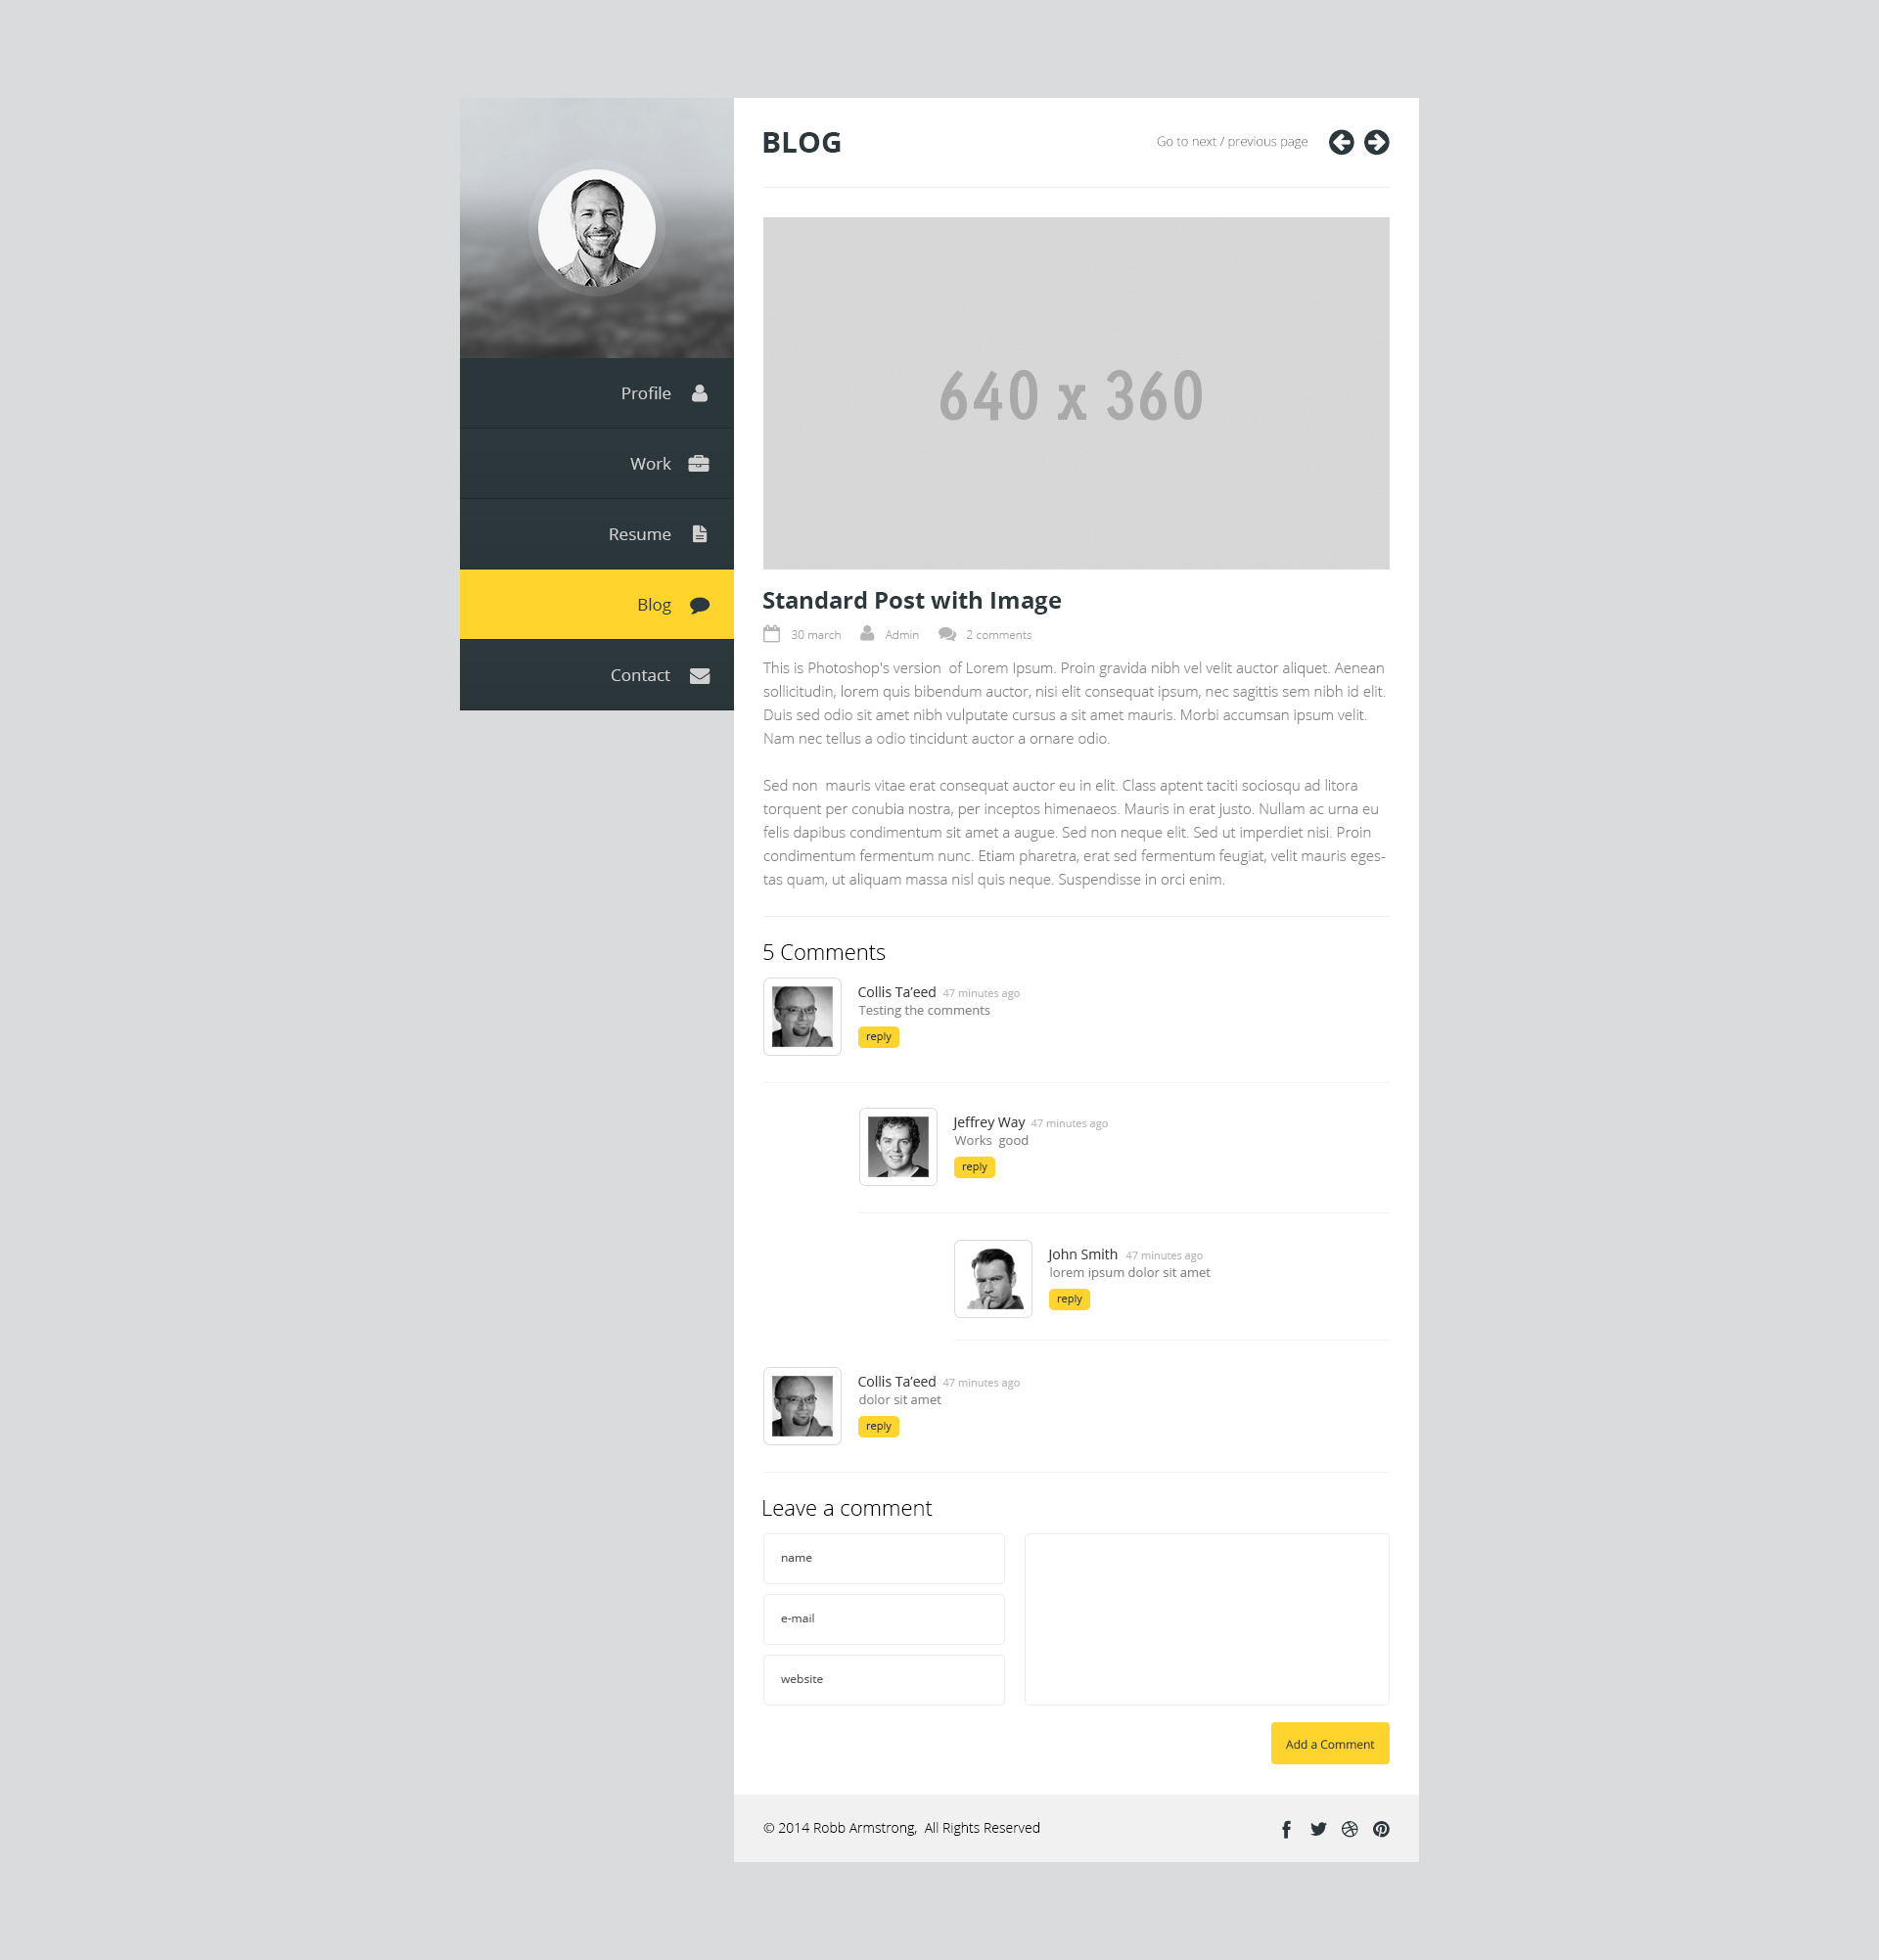 Fantastic 1 Circle Template Small 10 Best Resumes Solid 10 Hour Schedule Templates 10 Steps To Creating An Effective Resume Young 10 Words Not To Put On Your Resume Yellow100 Dollar Bill Template Premium Layers: HTML VCard \u0026 Resume Template By PremiumLayers ..